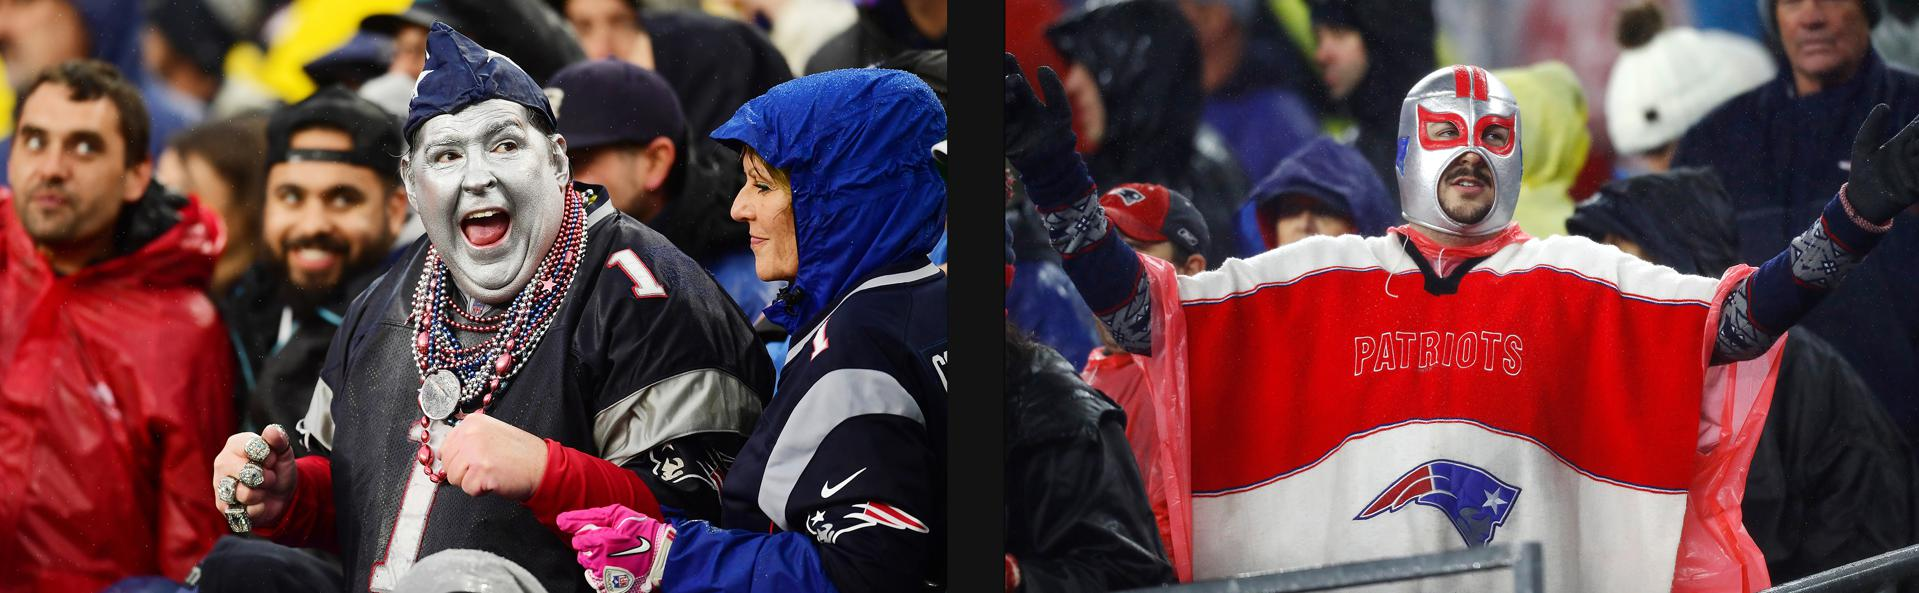 new-england-combo-patriots-by-omar-rawlings-getty-images